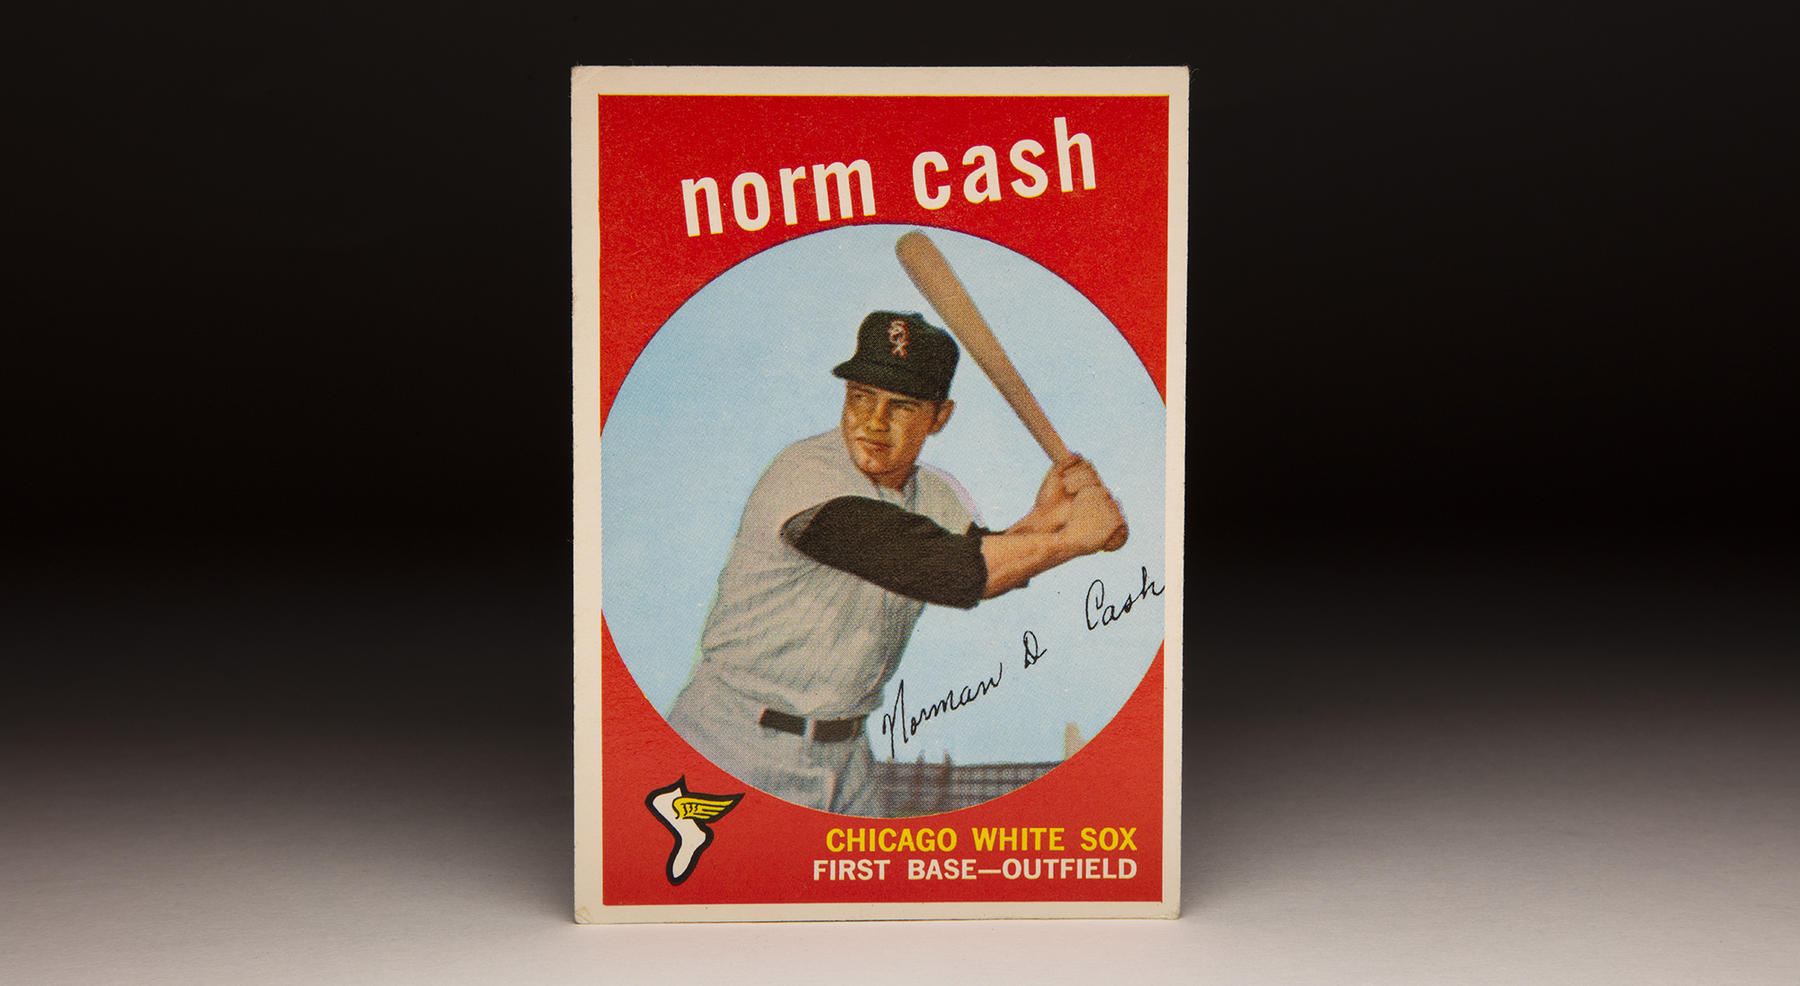 Norm Cash's 1959 card depicts him as a member of the Chicago White Sox. Cash spent two seasons with the White Sox, helping them to the 1959 American League pennant. (Topps baseball card photographed by Milo Stewart Jr./National Baseball Hall of Fame and Museum)